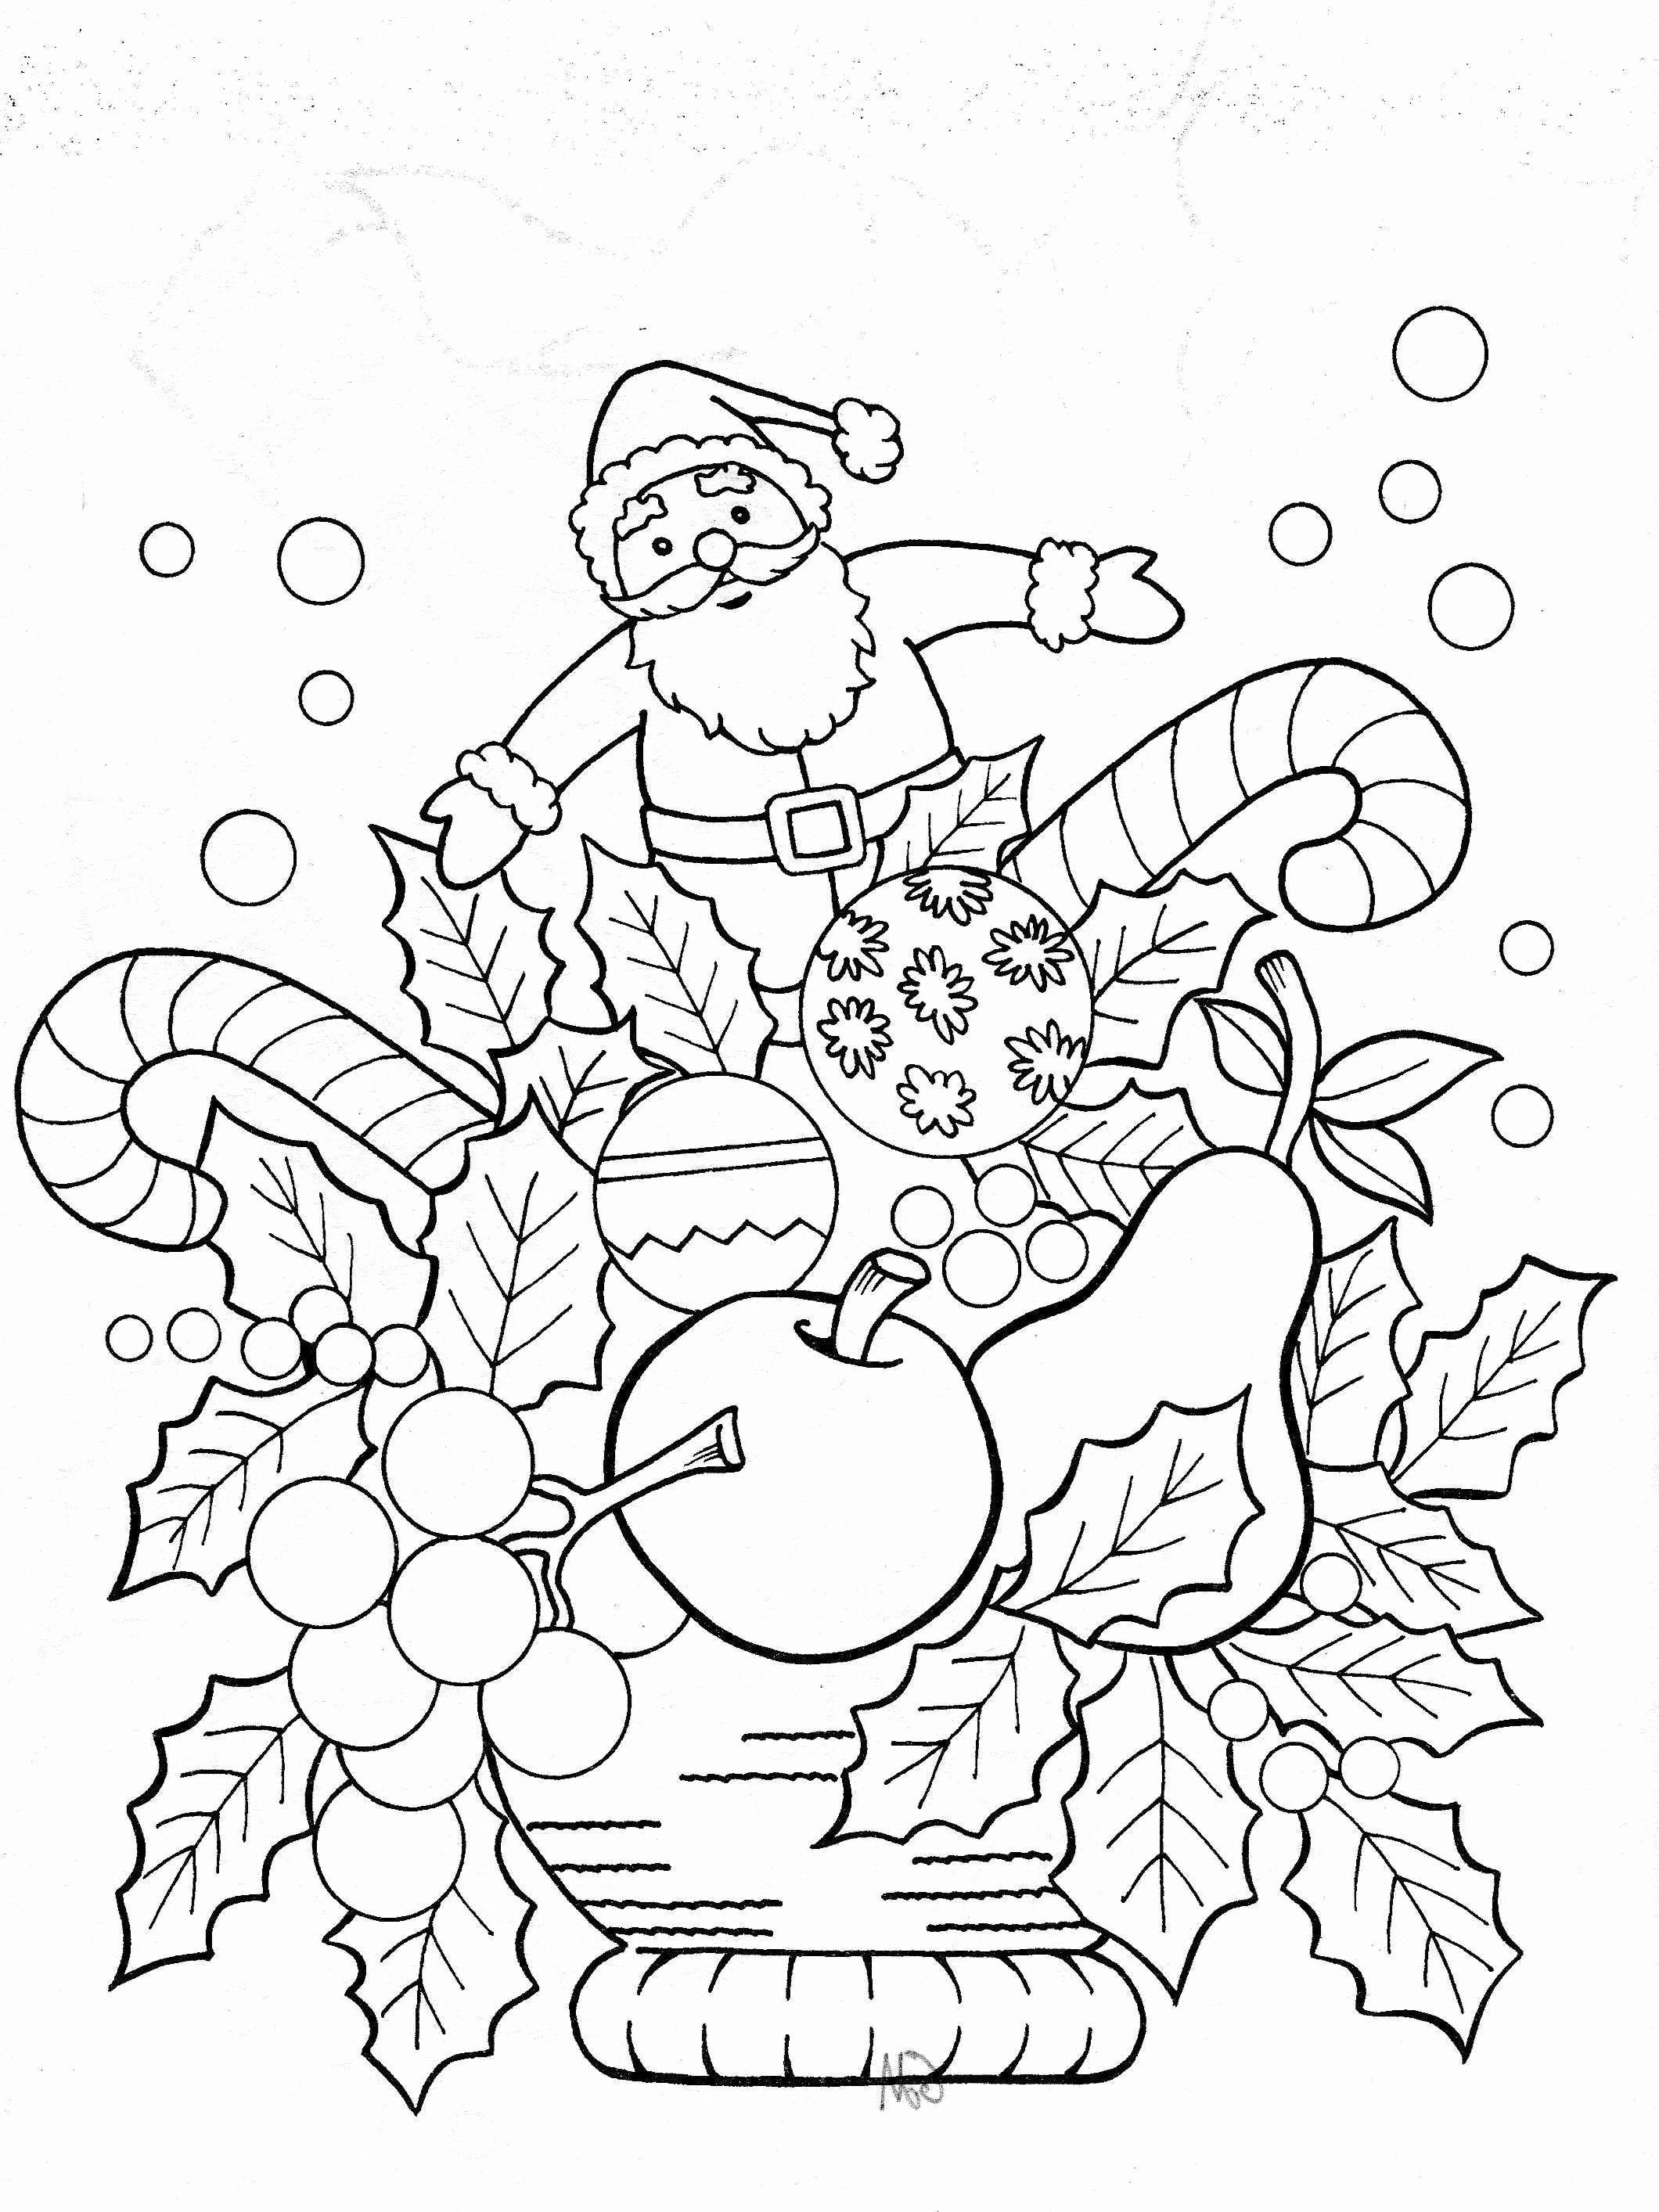 Coloring Activities For Kids Best Of Christmas Coloring